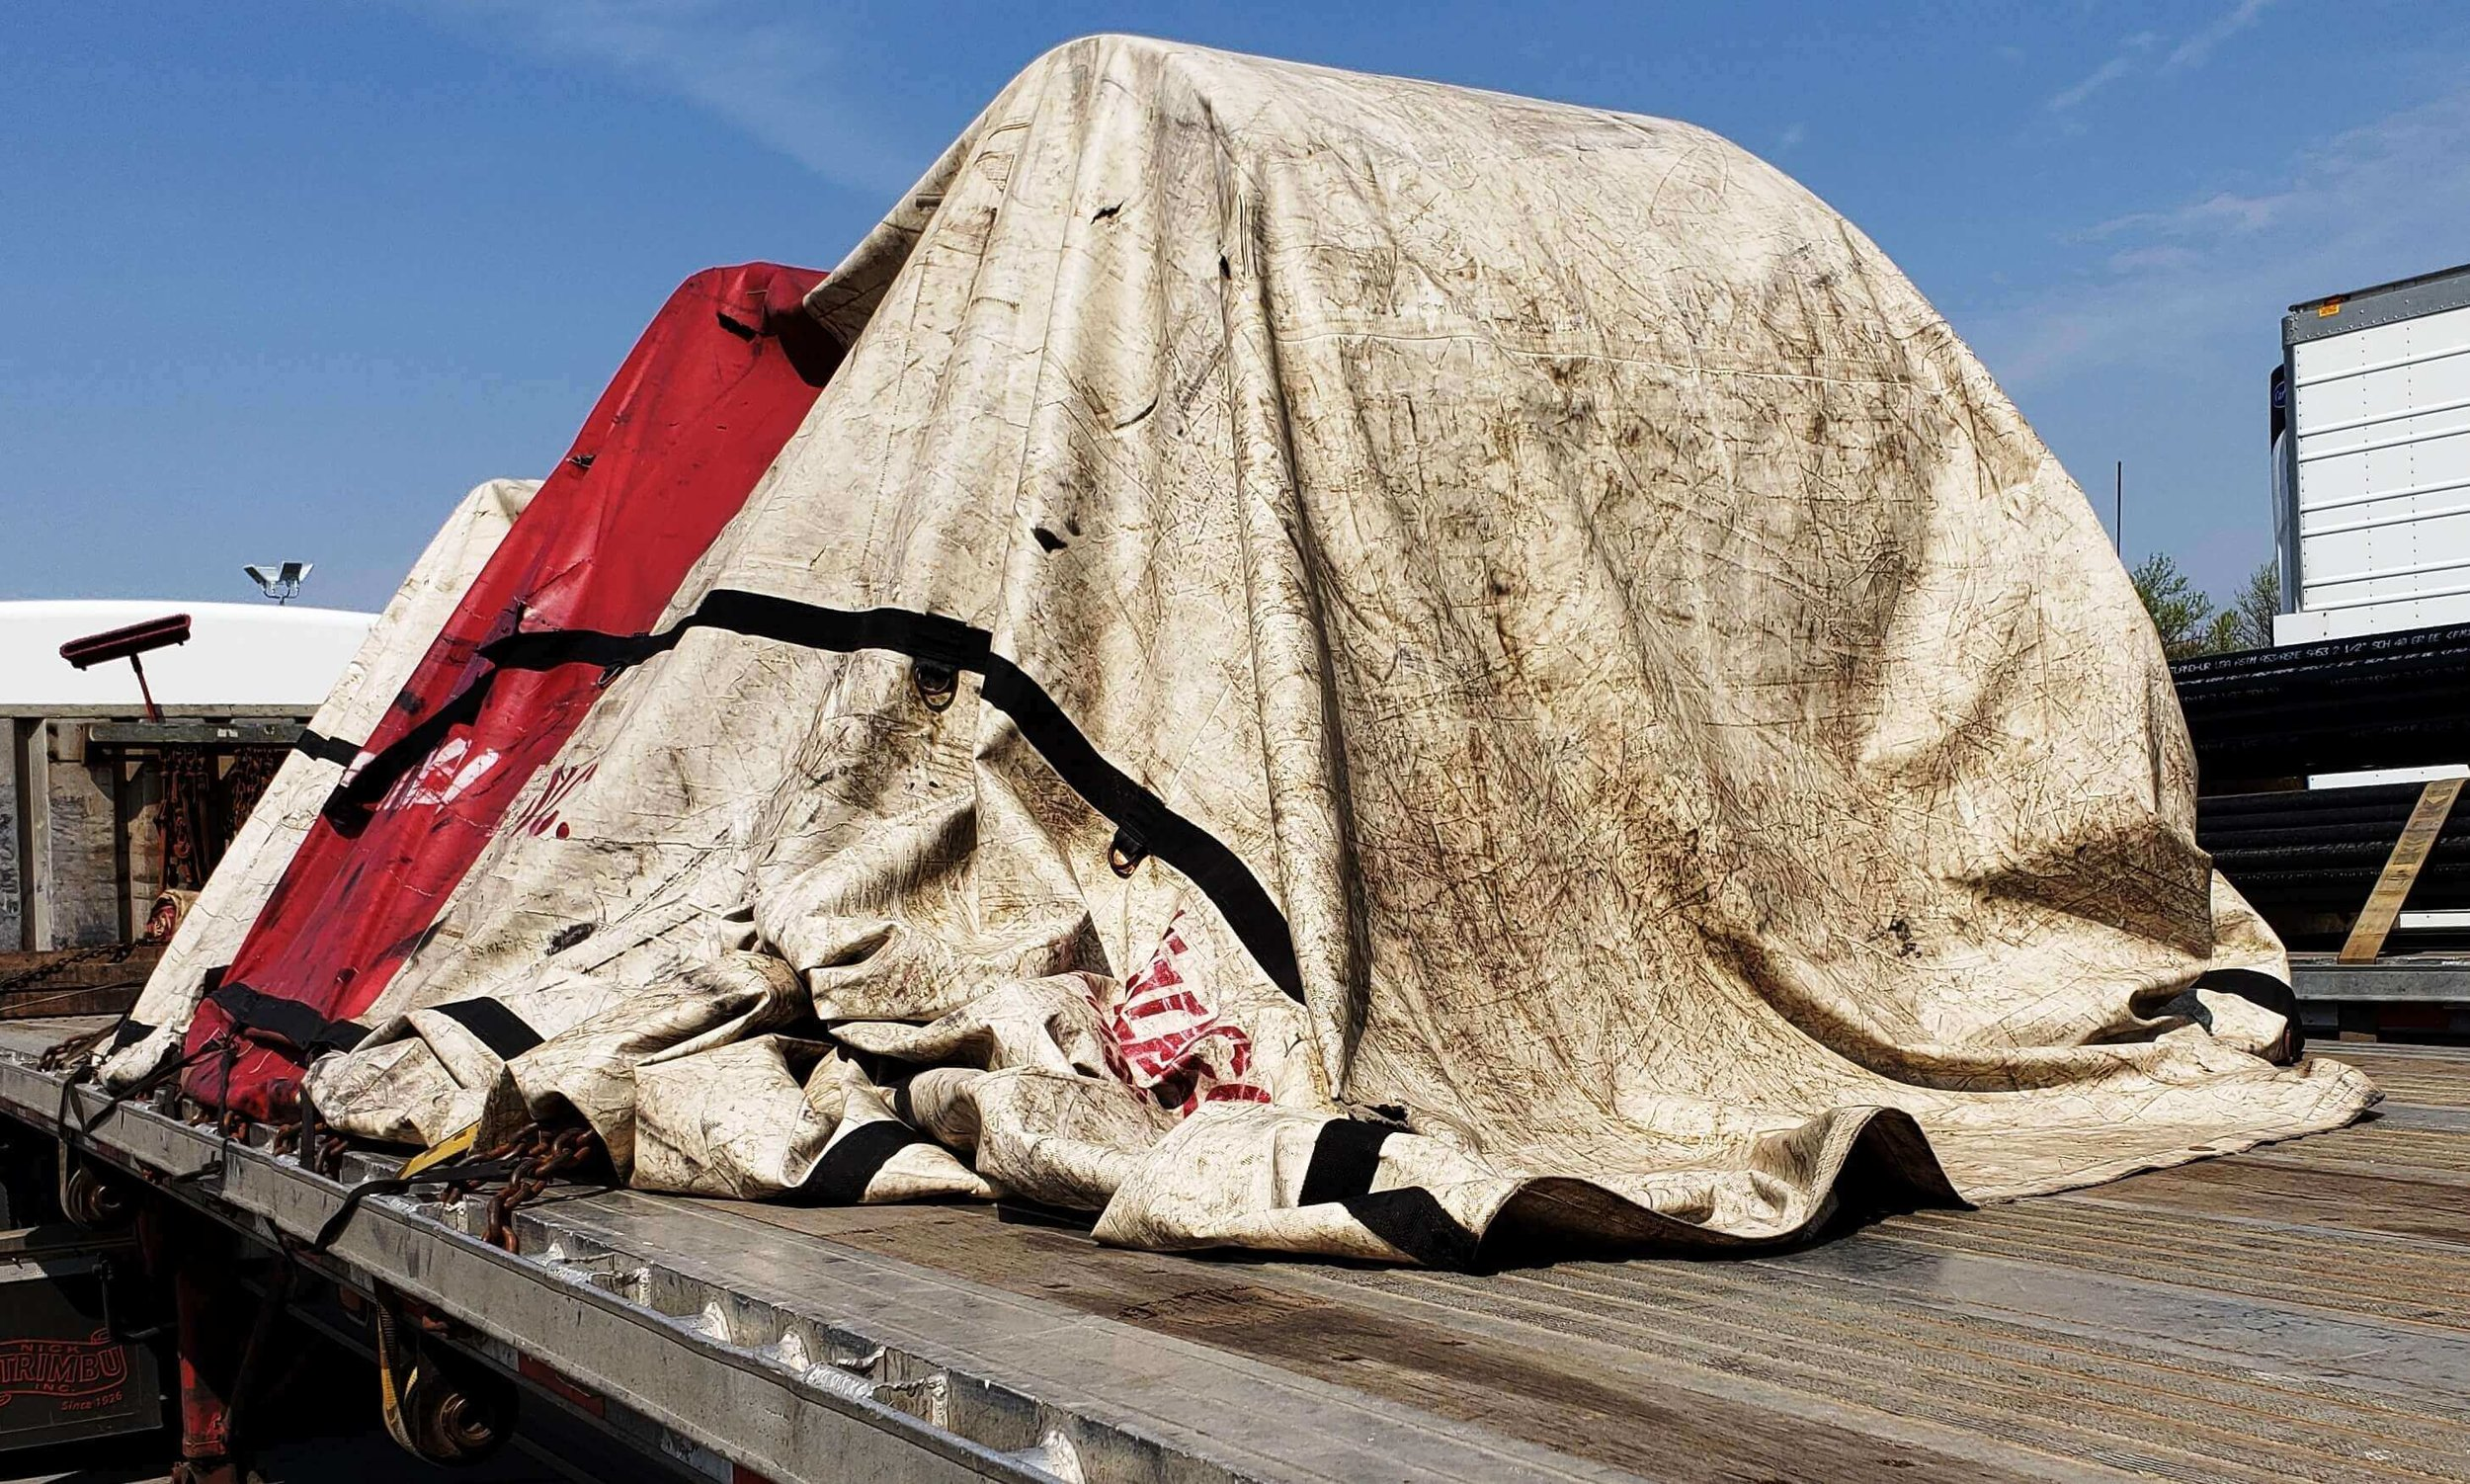 I-15:  Rear of tarp not secured. This tarp will flap in the wind, ultimately destroying itself.